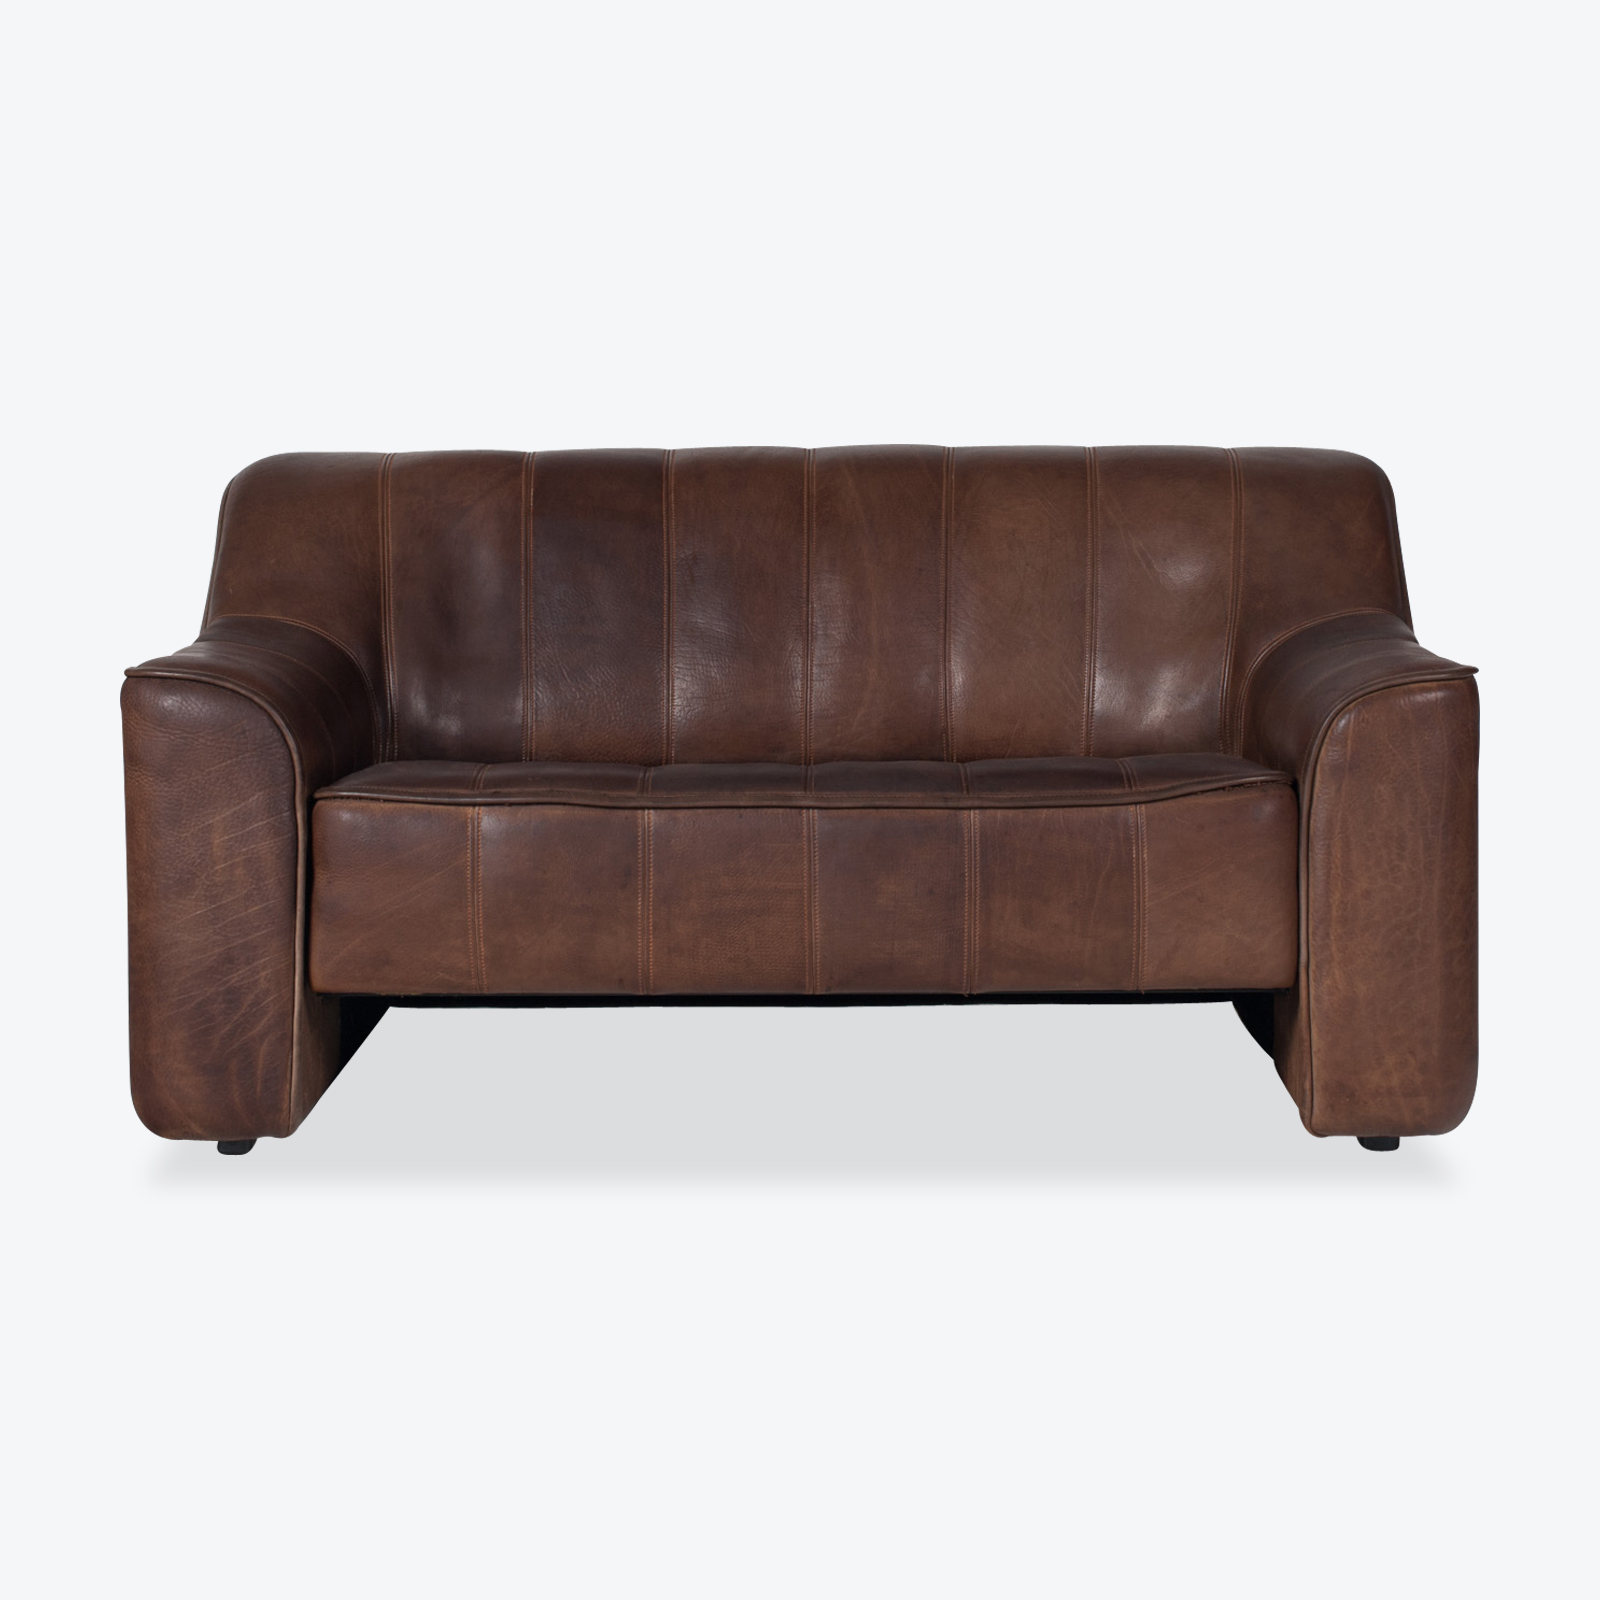 Model Ds 44 2 Seat Sofa In Buffalo Leather 1960s Switzerland 01